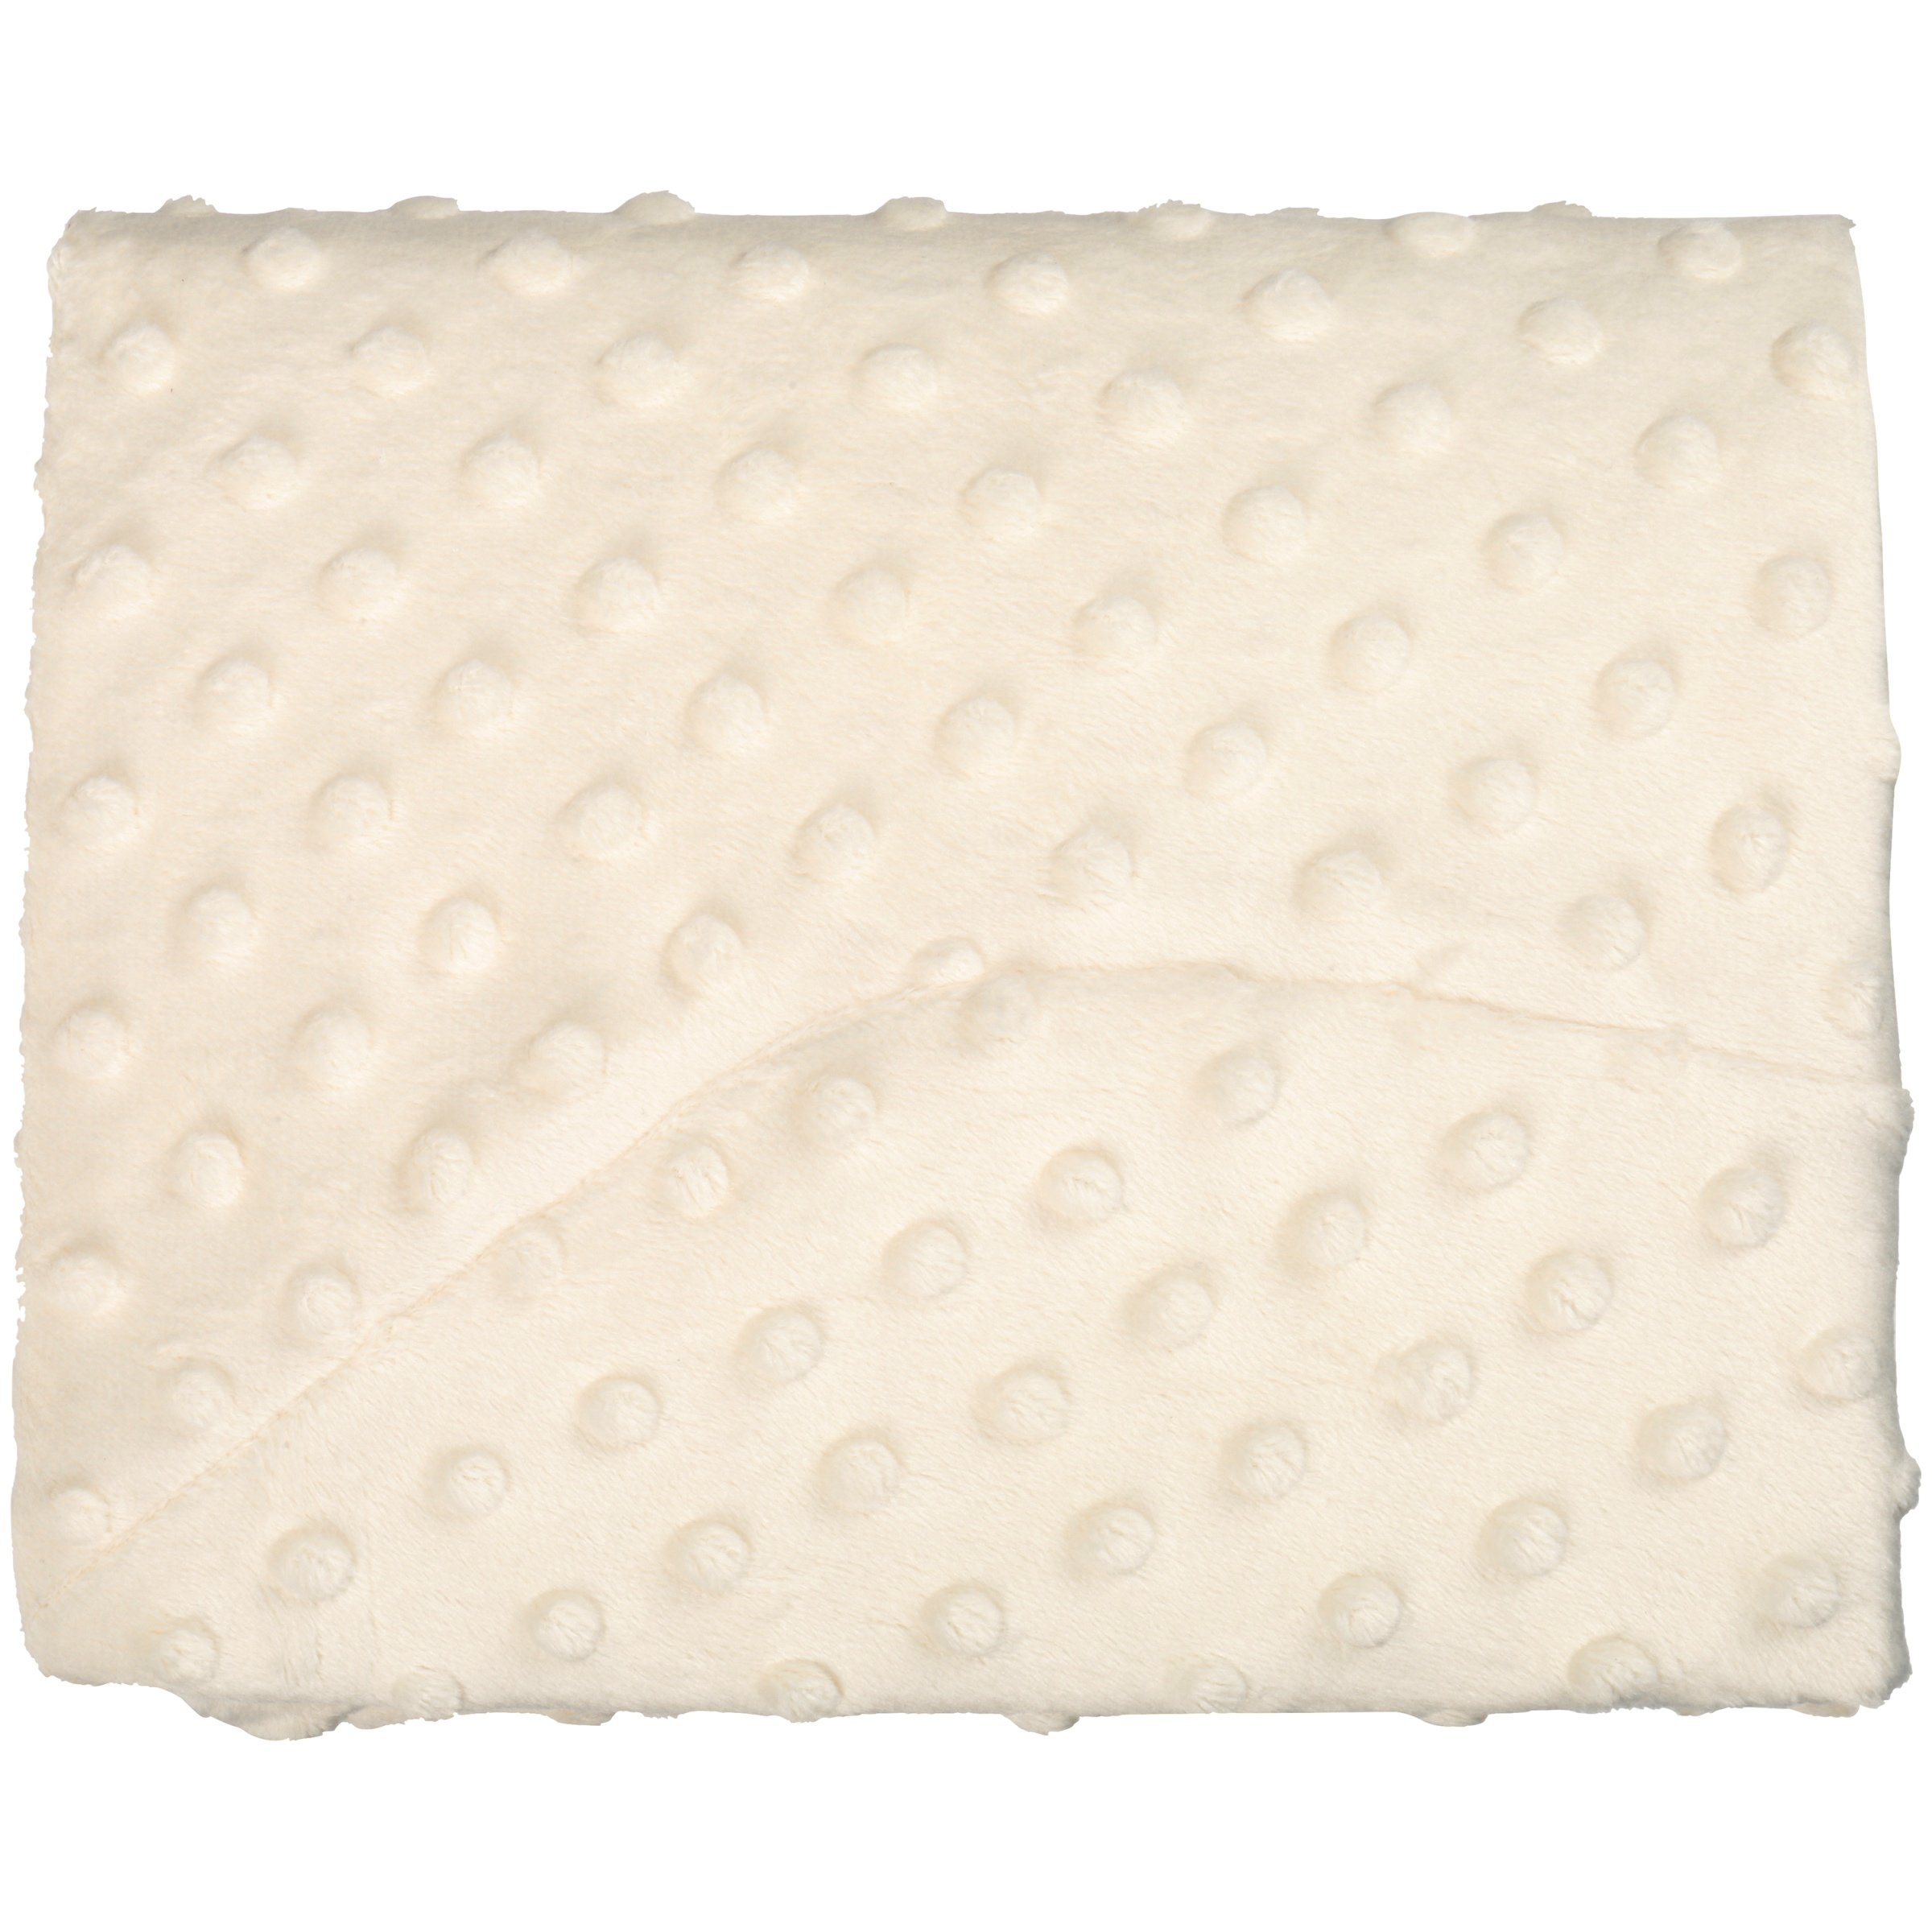 TL Care® Ecru Heavenly Soft Minky Dot Fitted Contoured Changing Pad Cover